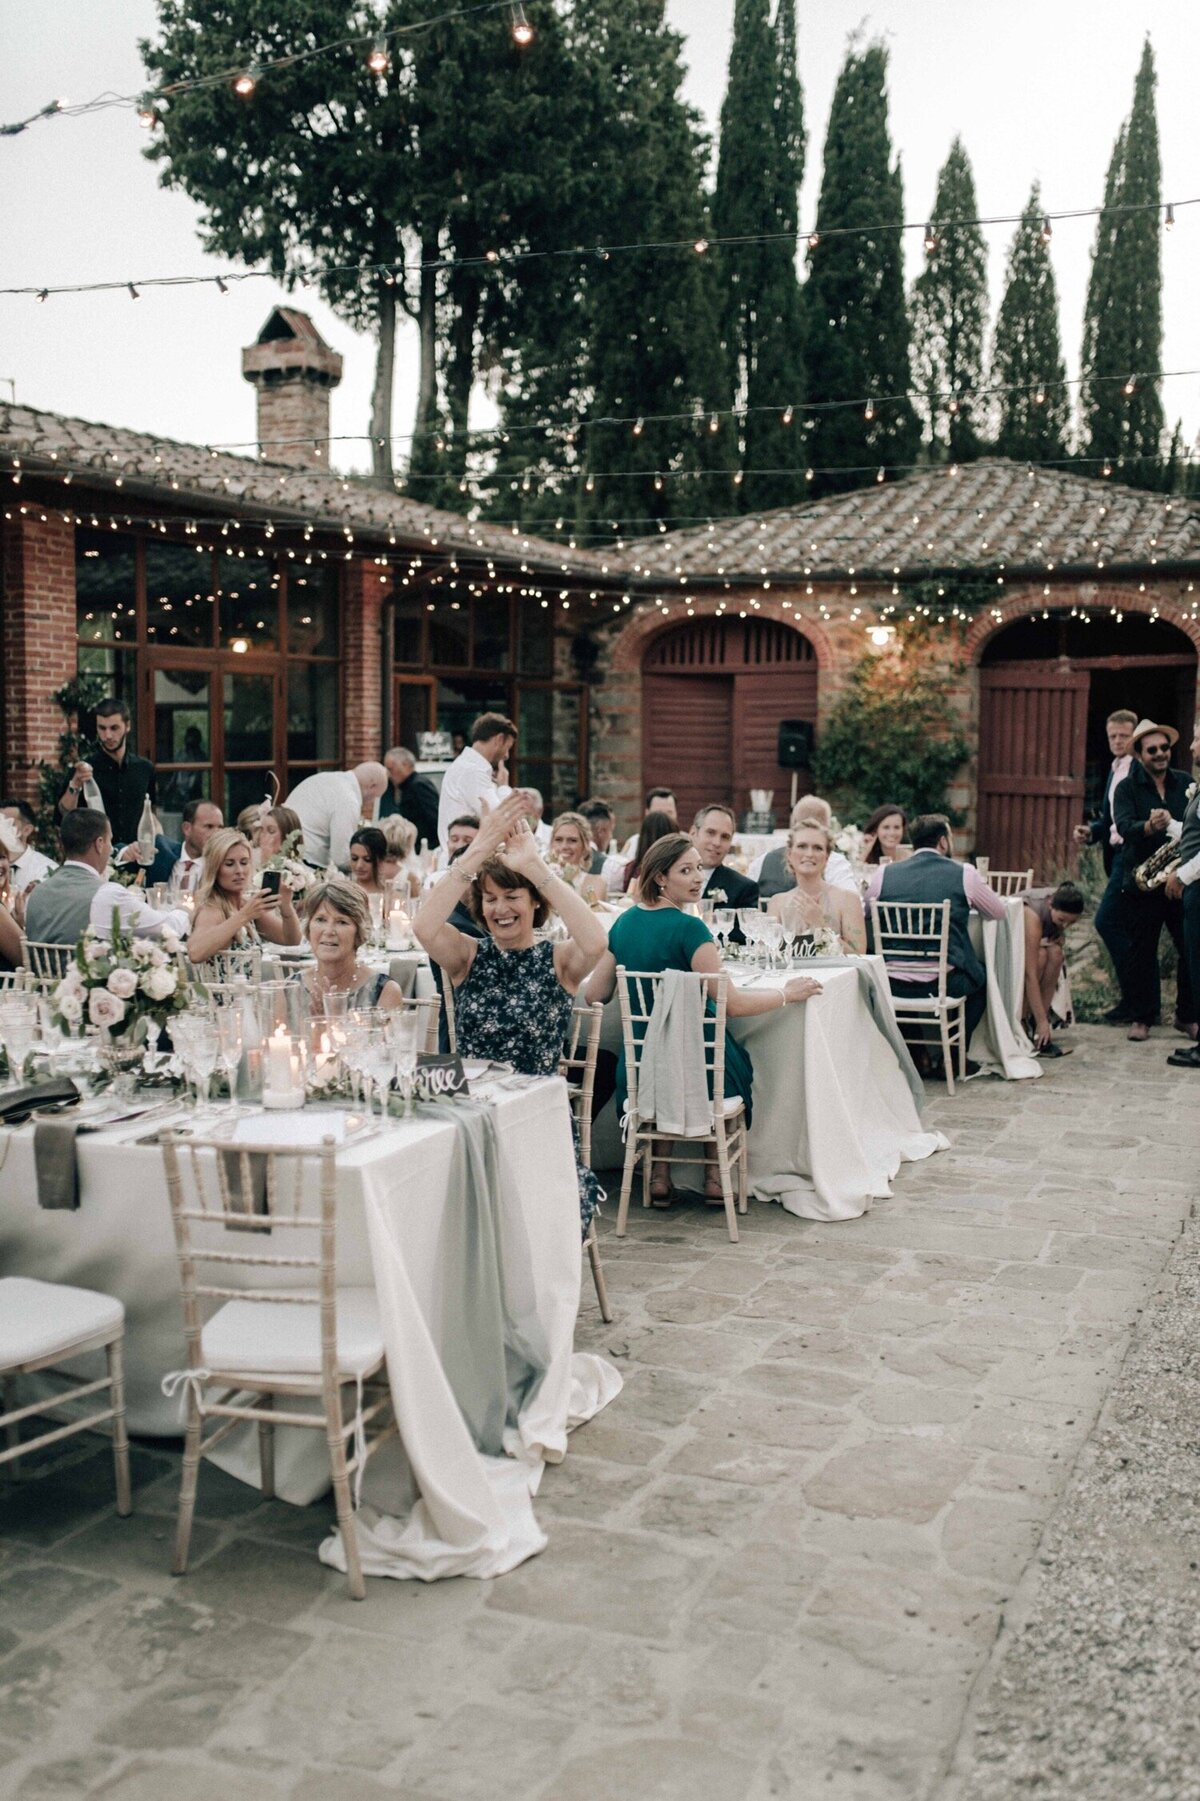 144_Tuscany_Luxury_Wedding_Photographer (160 von 215)_So thankful to be a luxury destination wedding photographer in Tuscany! Claire and James invited their beloved family & friends from London to their luxury wedding in Tuscany.